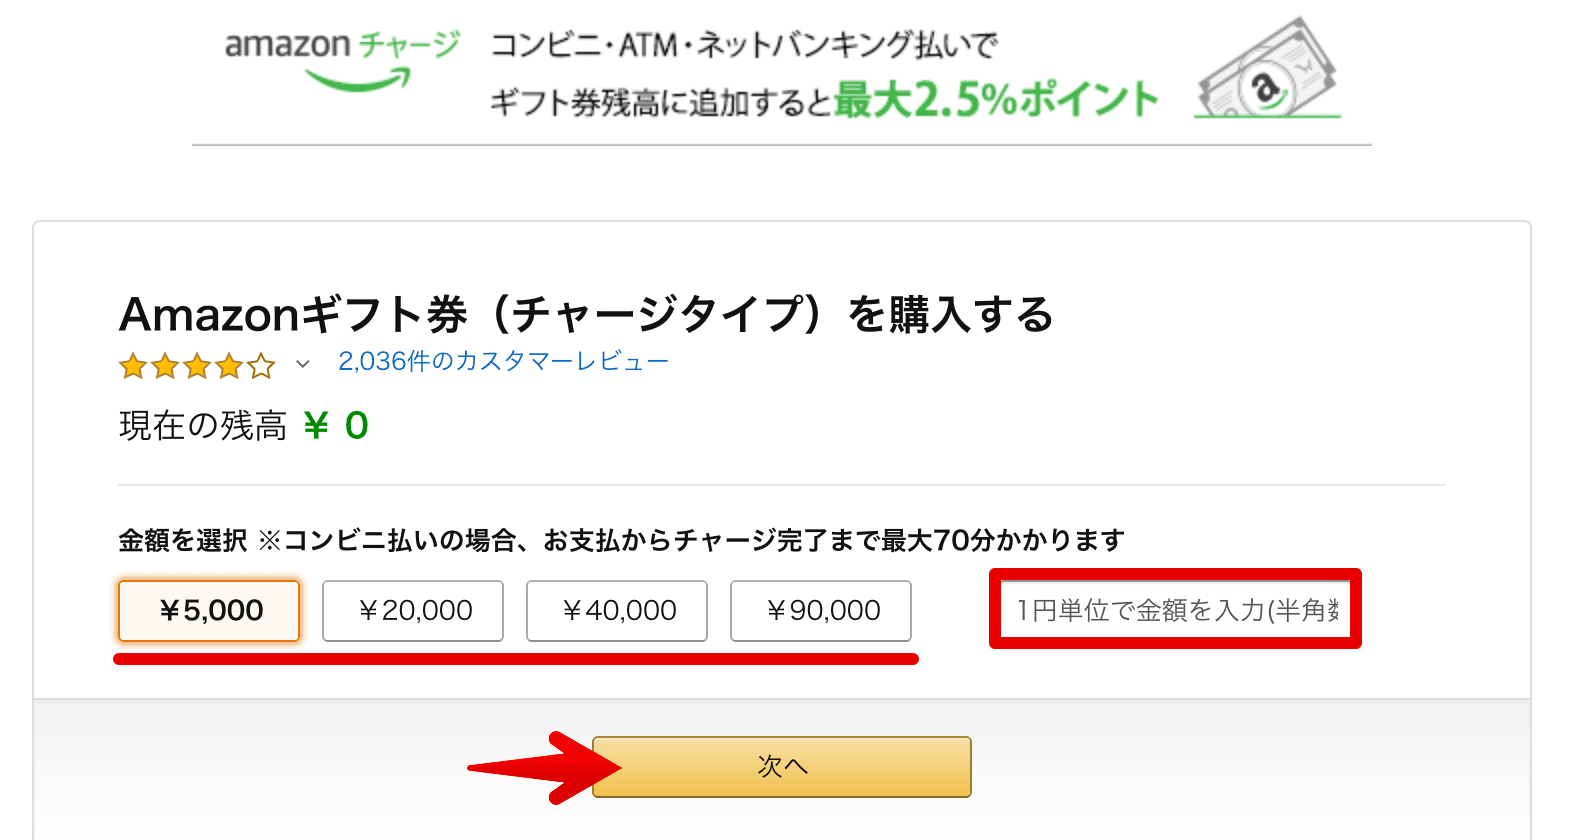 Amazonギフトチャージタイプ購入